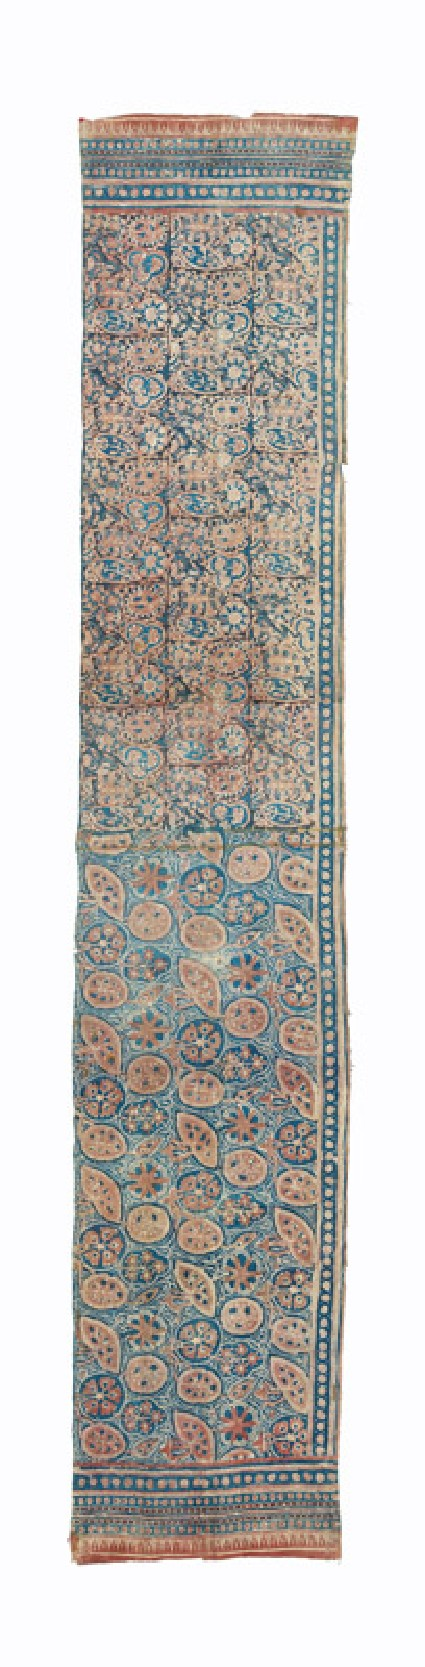 Textile fragment with leaves and flowersfront